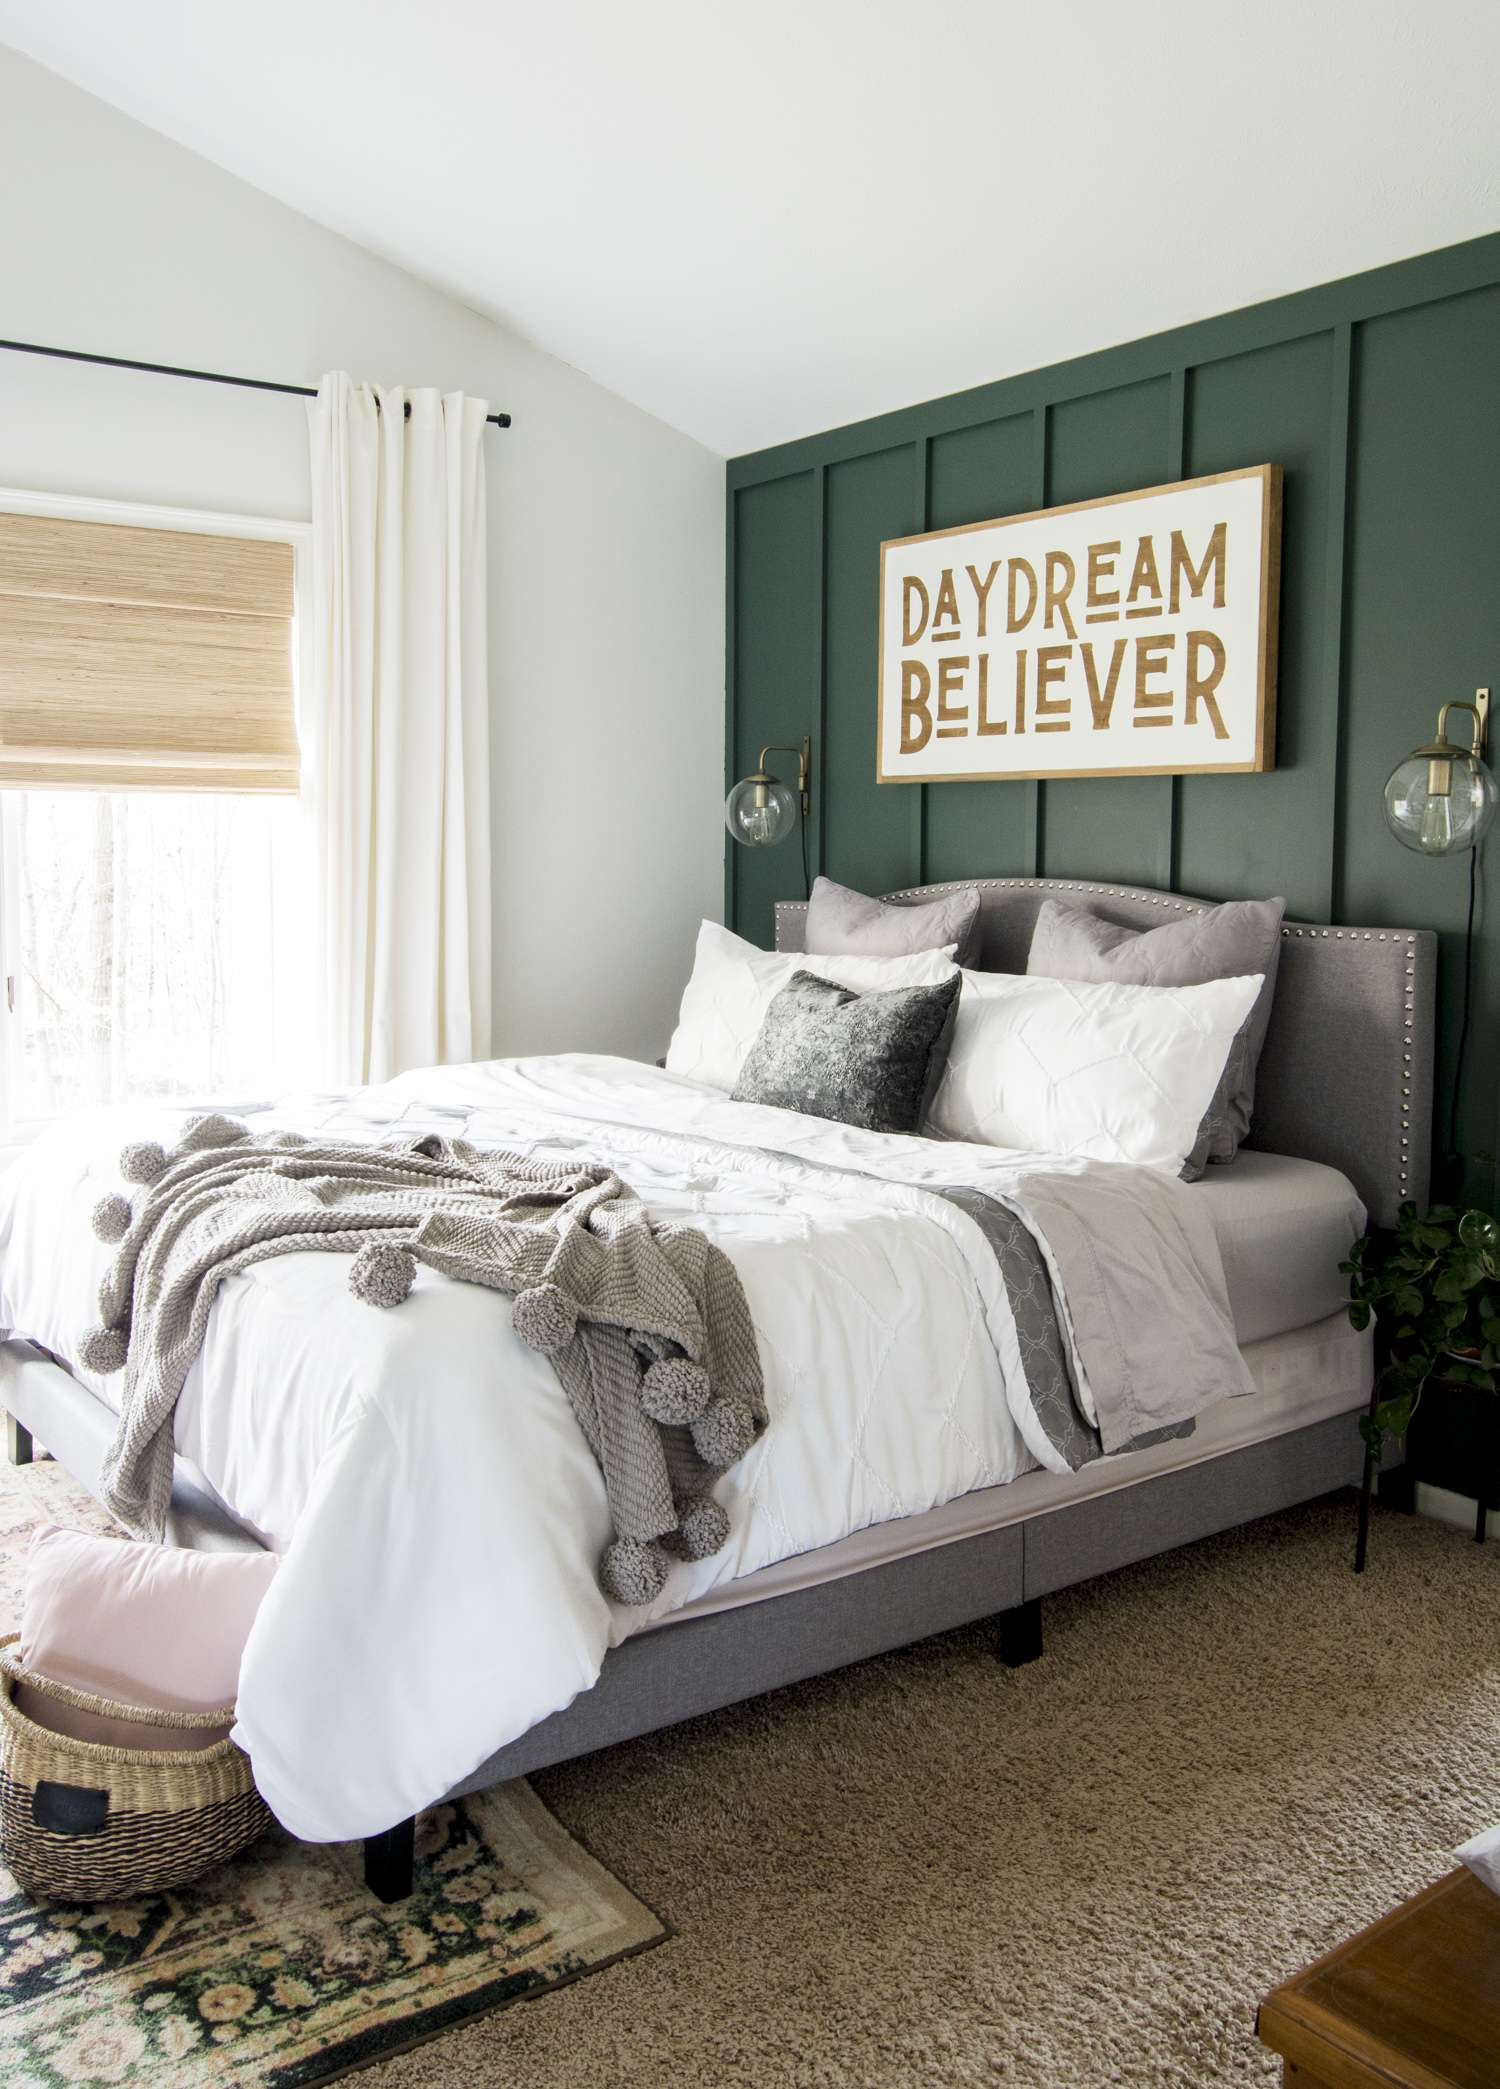 Modern farmhouse bedroom decor ideas.